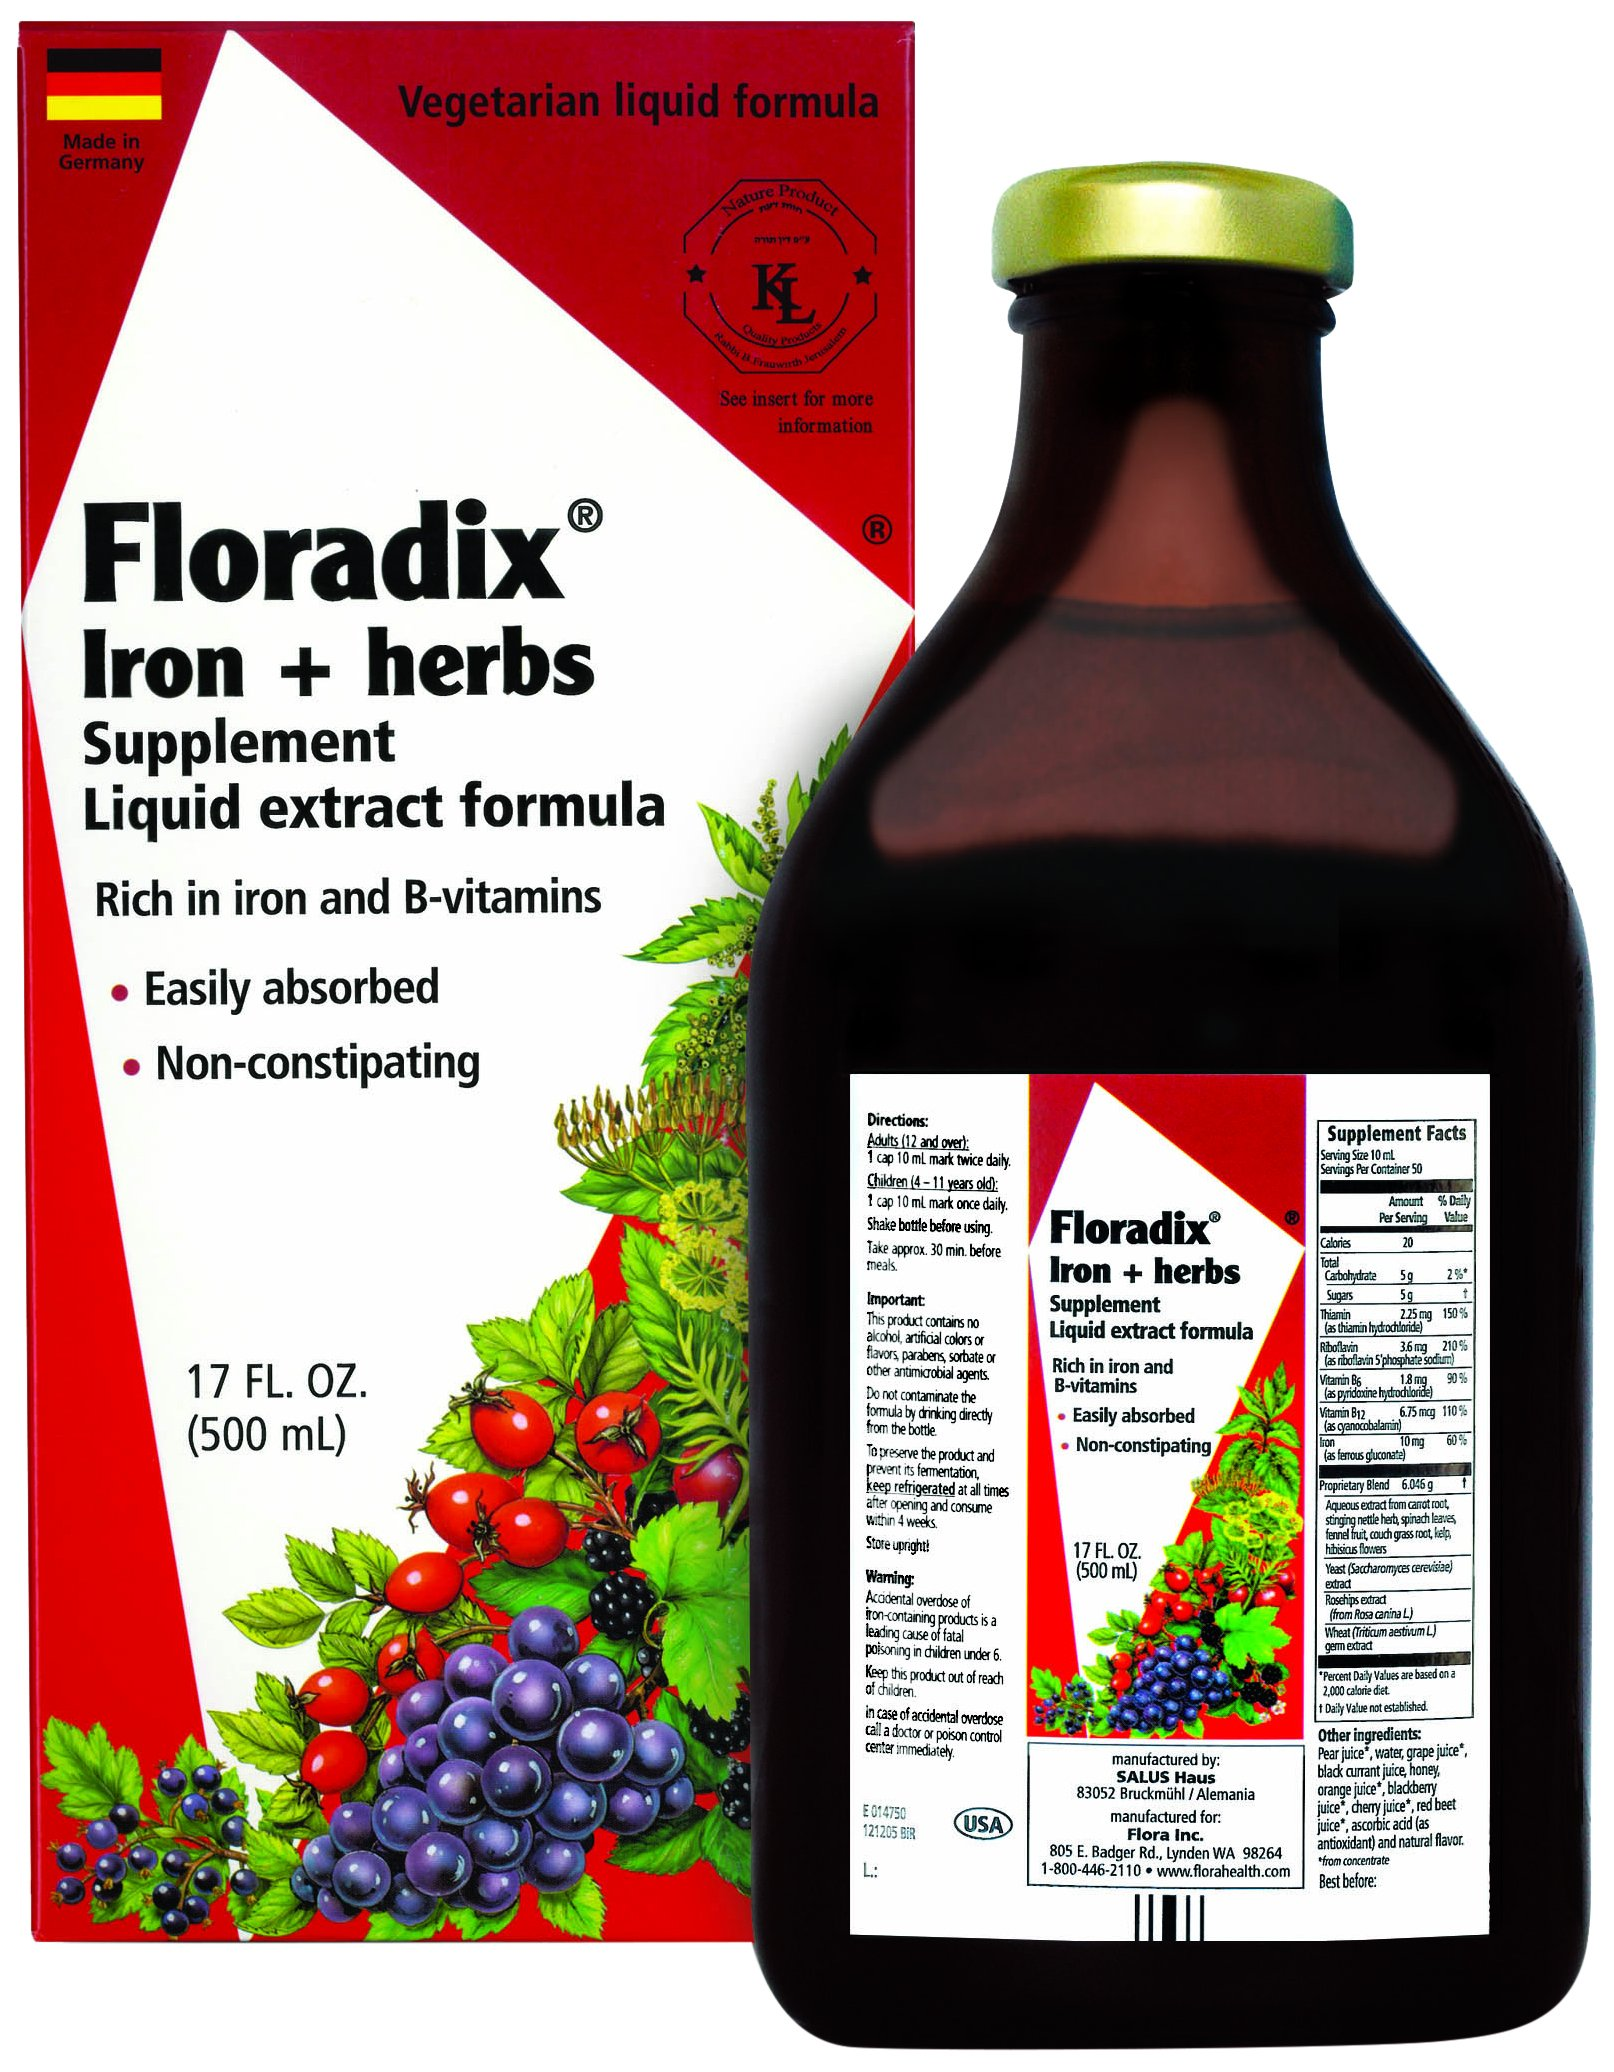 Floradix Liquid Iron Supplement + Herbs 17 Oz Large - All Natural, Vegetarian, Vitamin C, Non Constipating - Supports Energy & Red Blood Cell Production for Women & Men - for Anemia by Flora